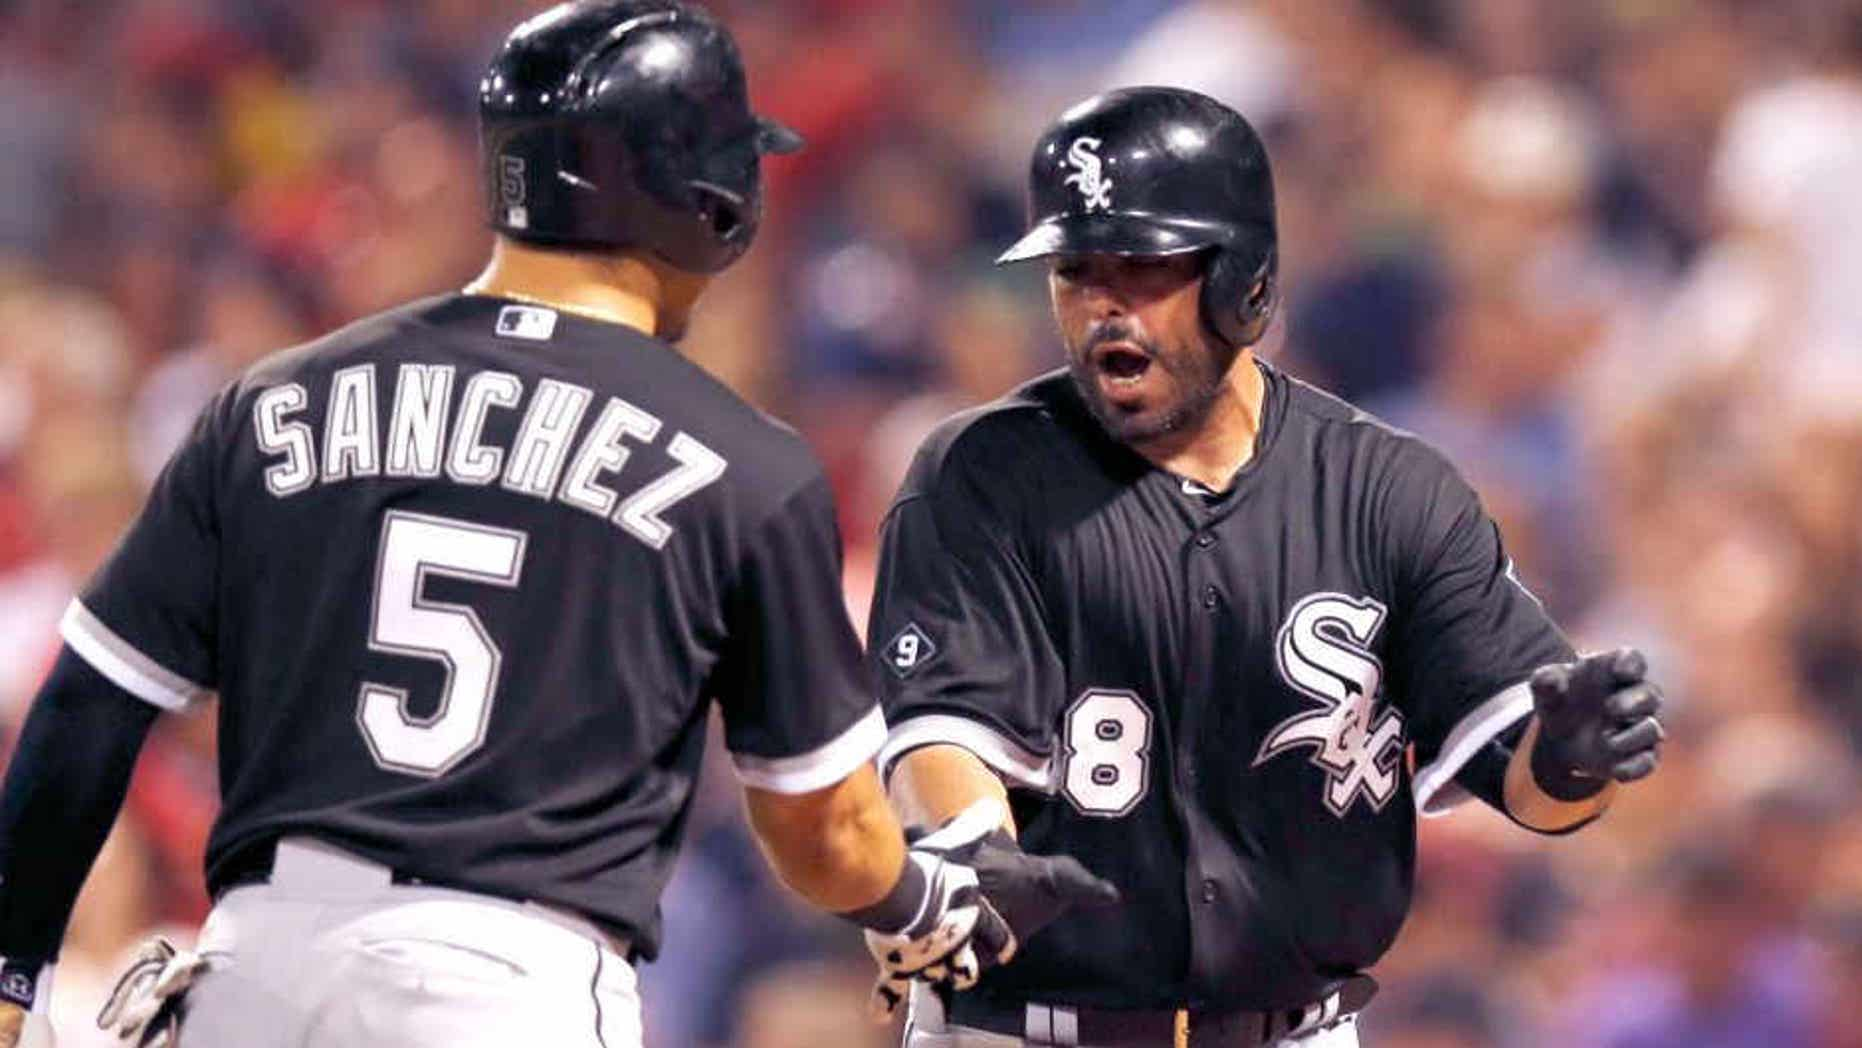 Jul 28, 2015; Boston, MA, USA; Chicago White Sox catcher Geovany Soto (58) is congratulated second baseman Carlos Sanchez (5) after hitting a home run during the seventh inning at Fenway Park. Mandatory Credit: Greg M. Cooper-USA TODAY Sports